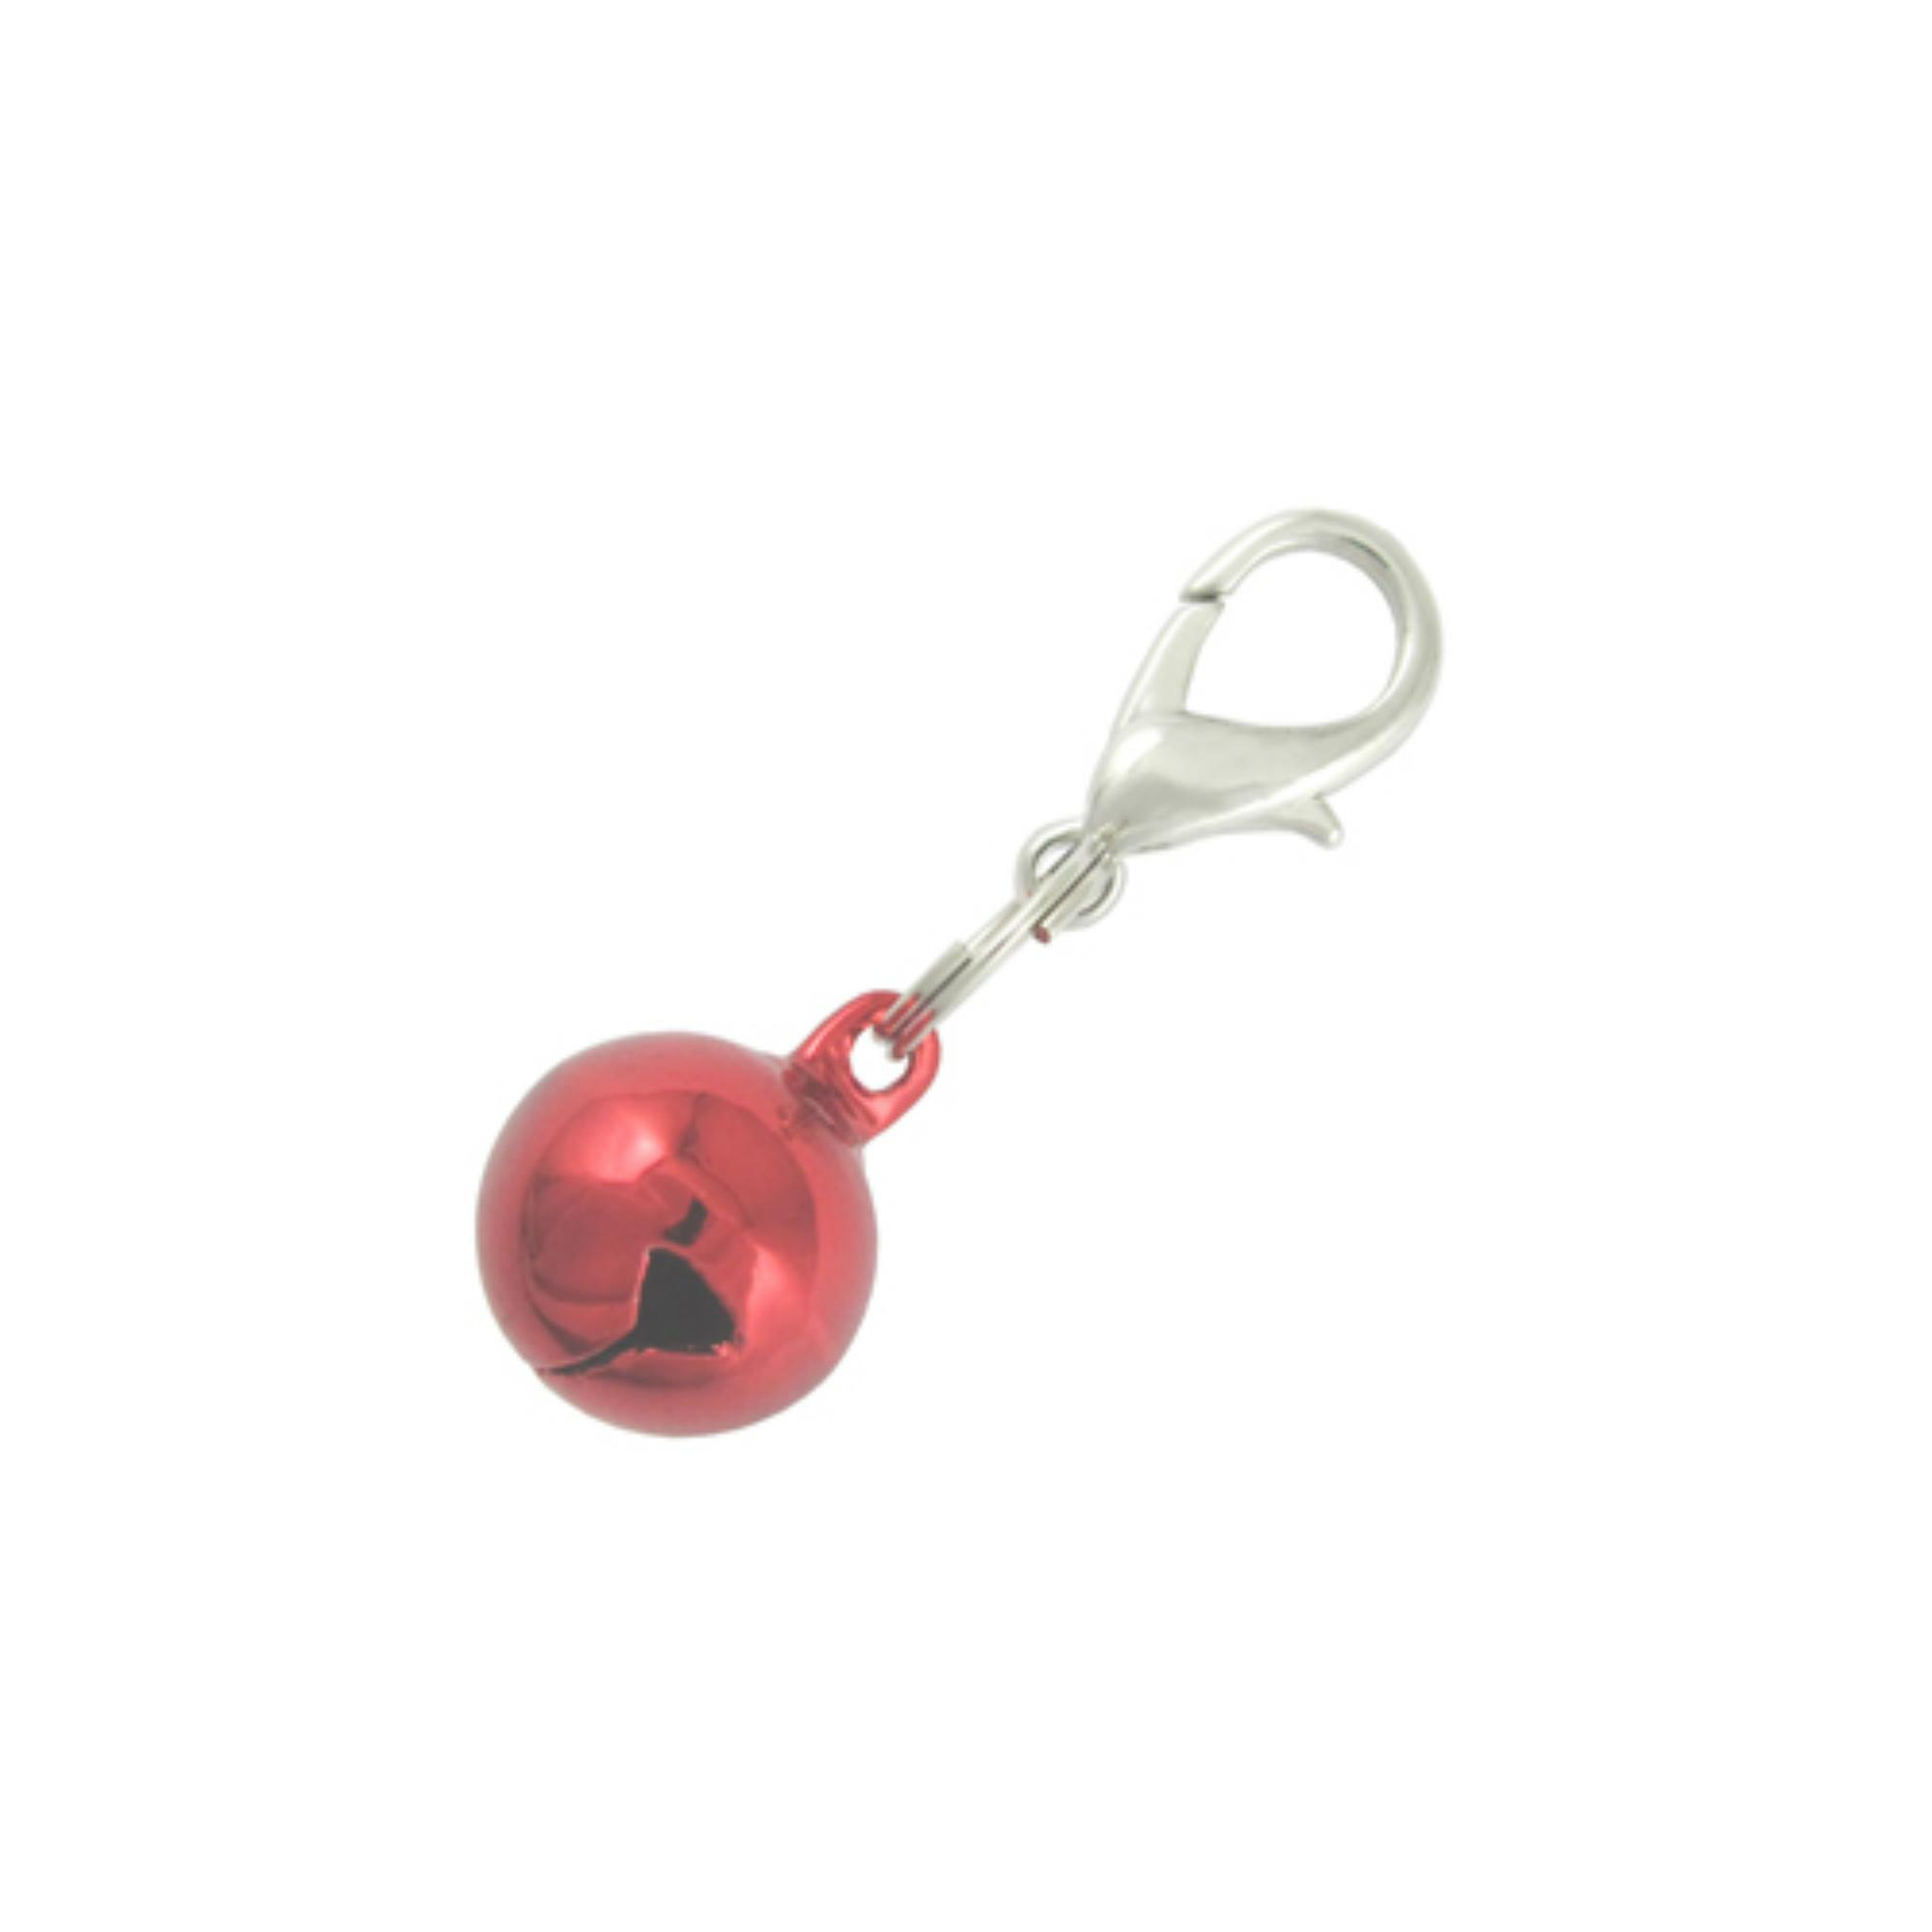 Lobster Clasp Bell Collar Charm - Metallic Red